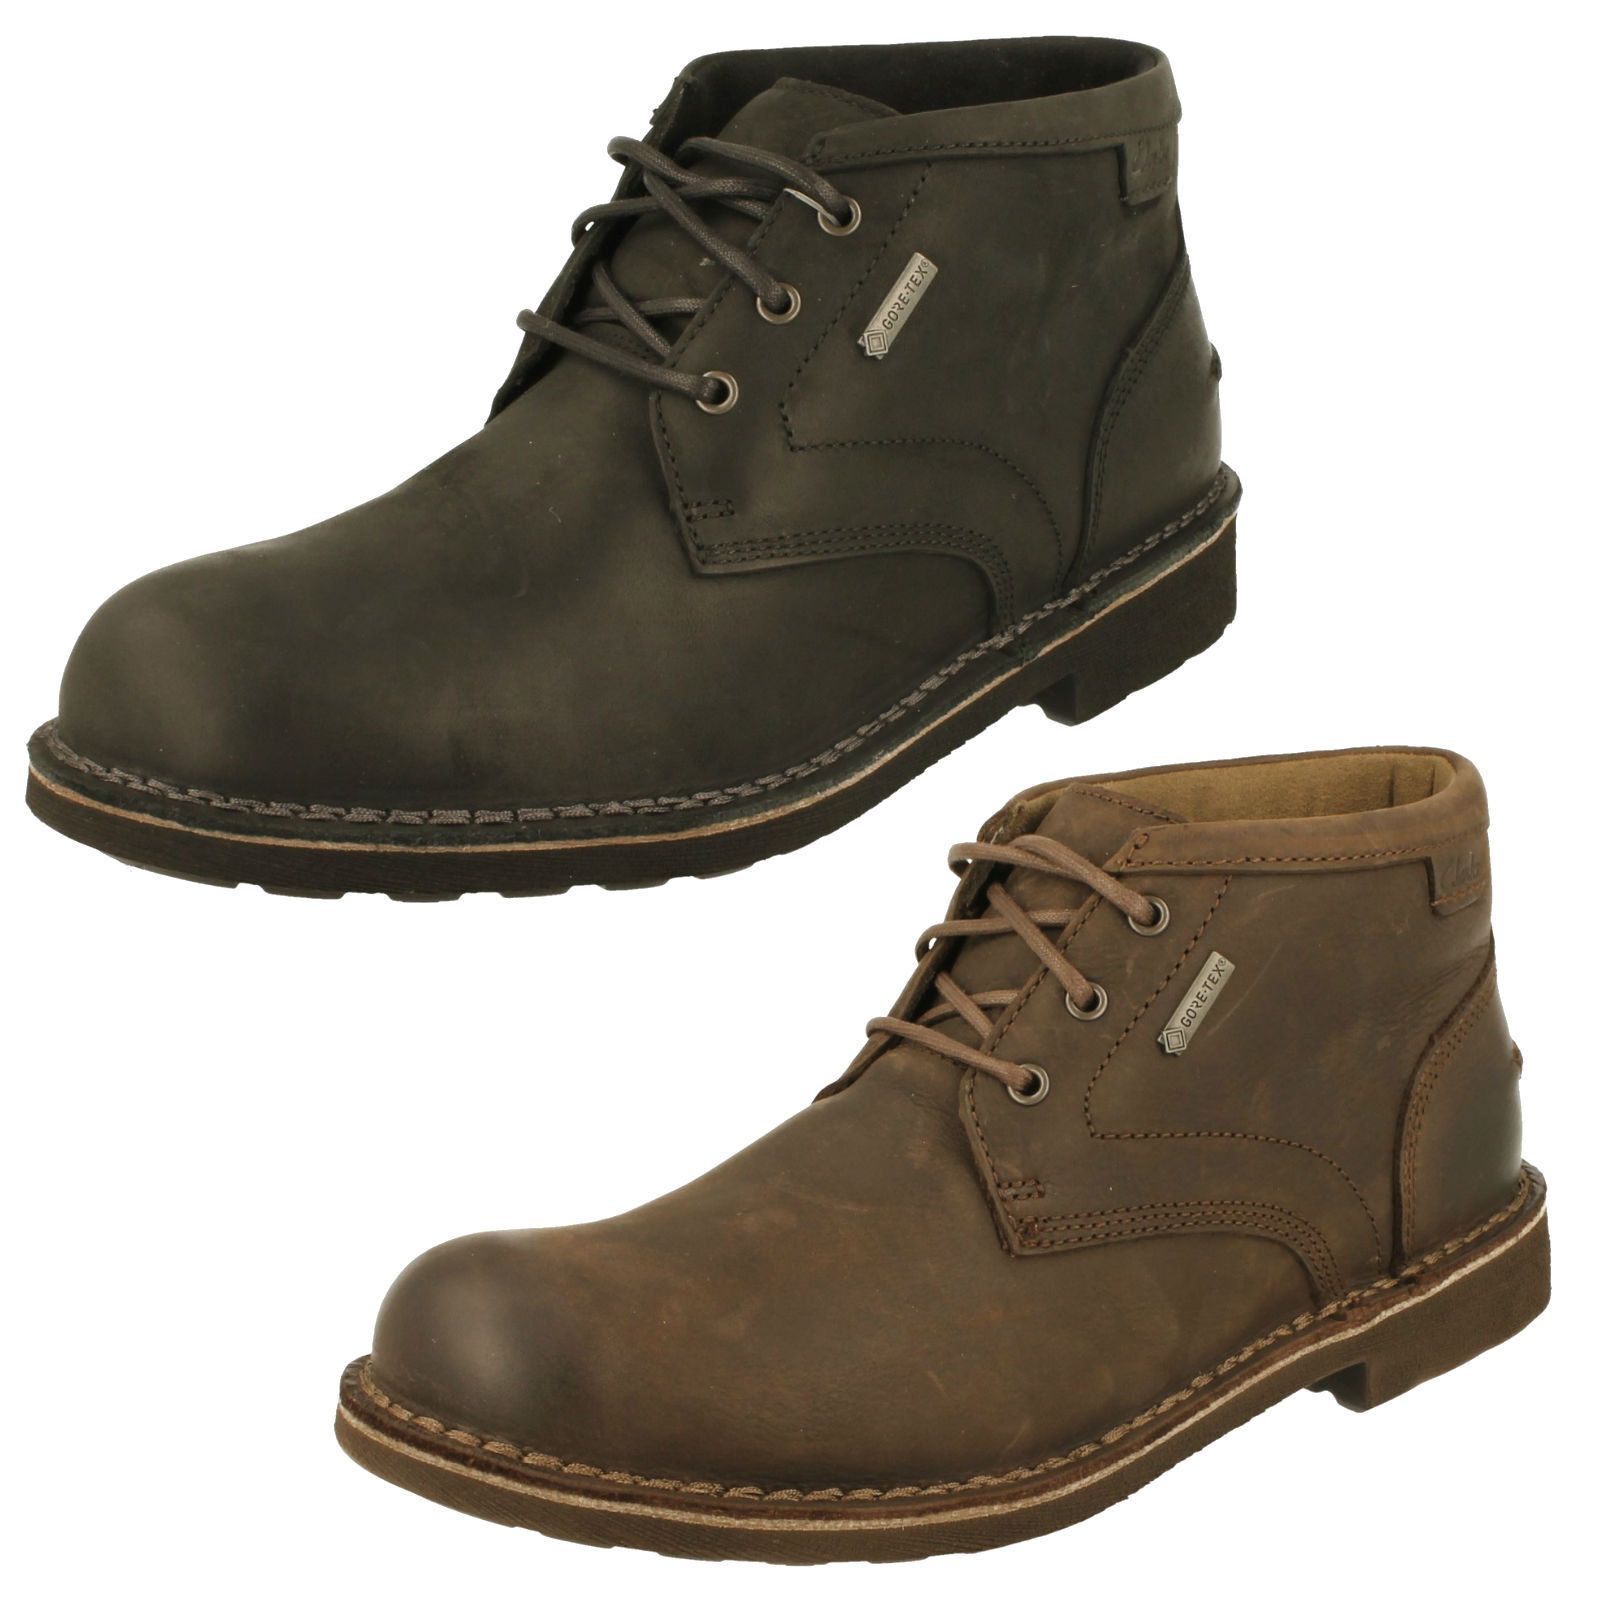 Men's Clarks Casual Gore-Tex Lined  Boots - Lawes Mid GTX